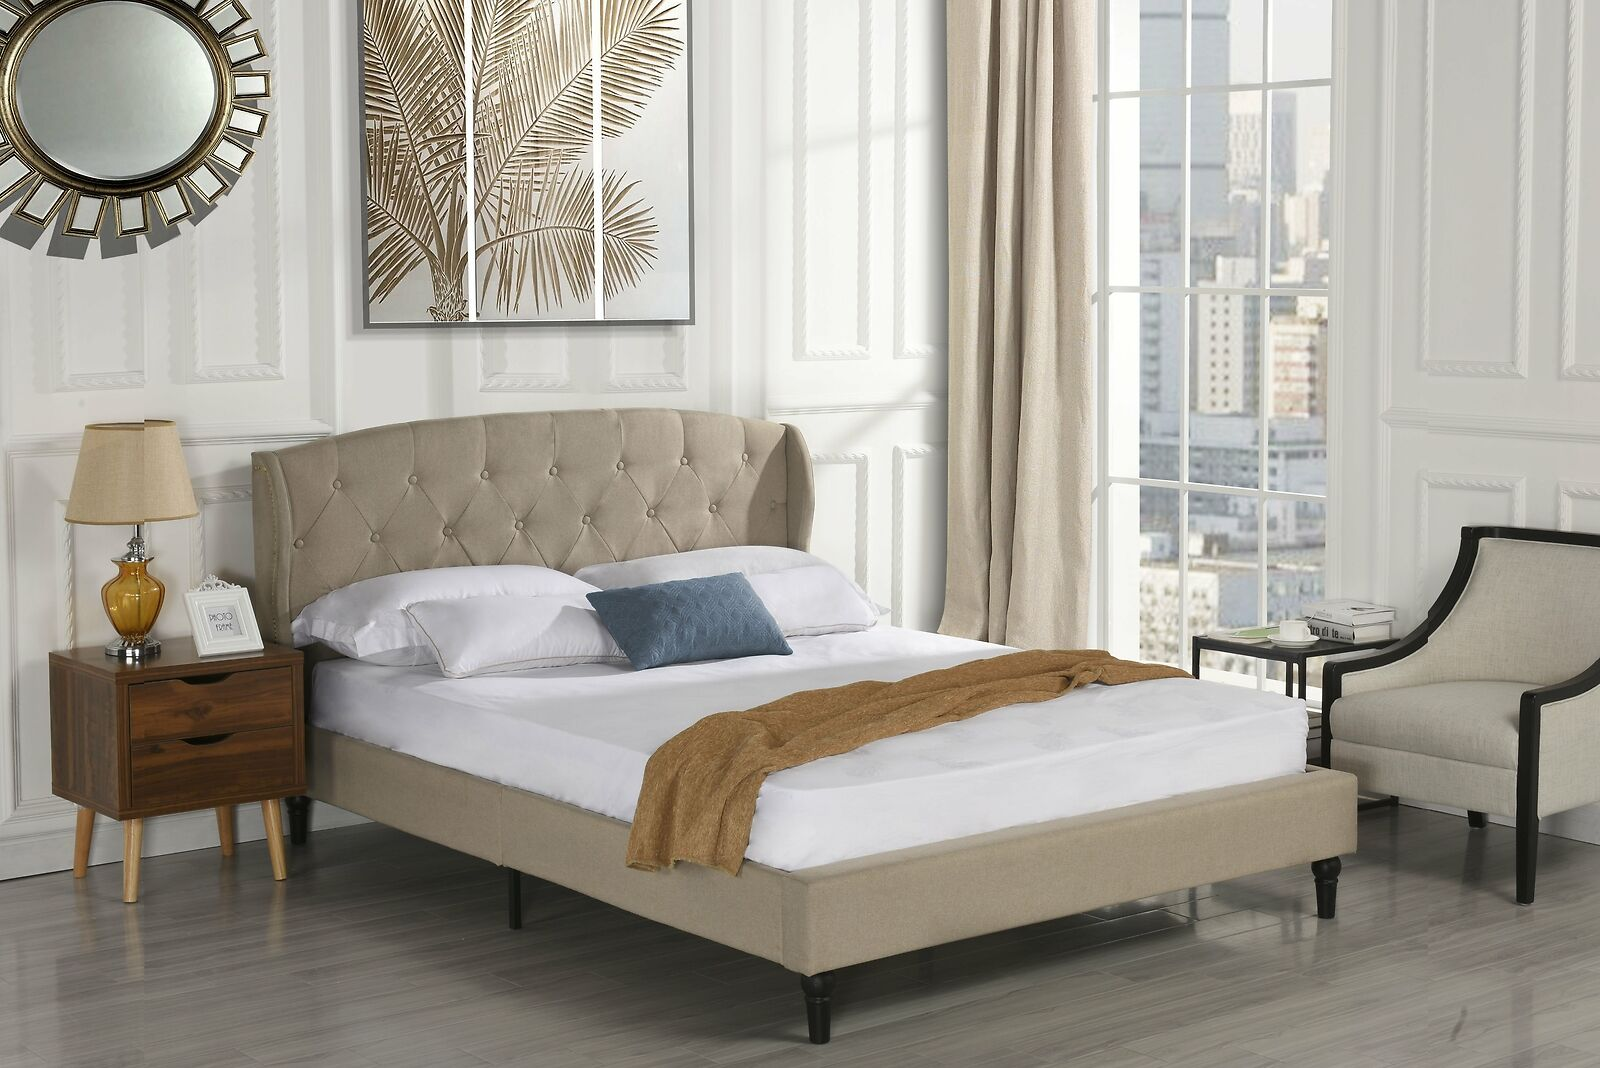 Classic Dark Beige Box-Tufted Shelter Bed (Full Size)